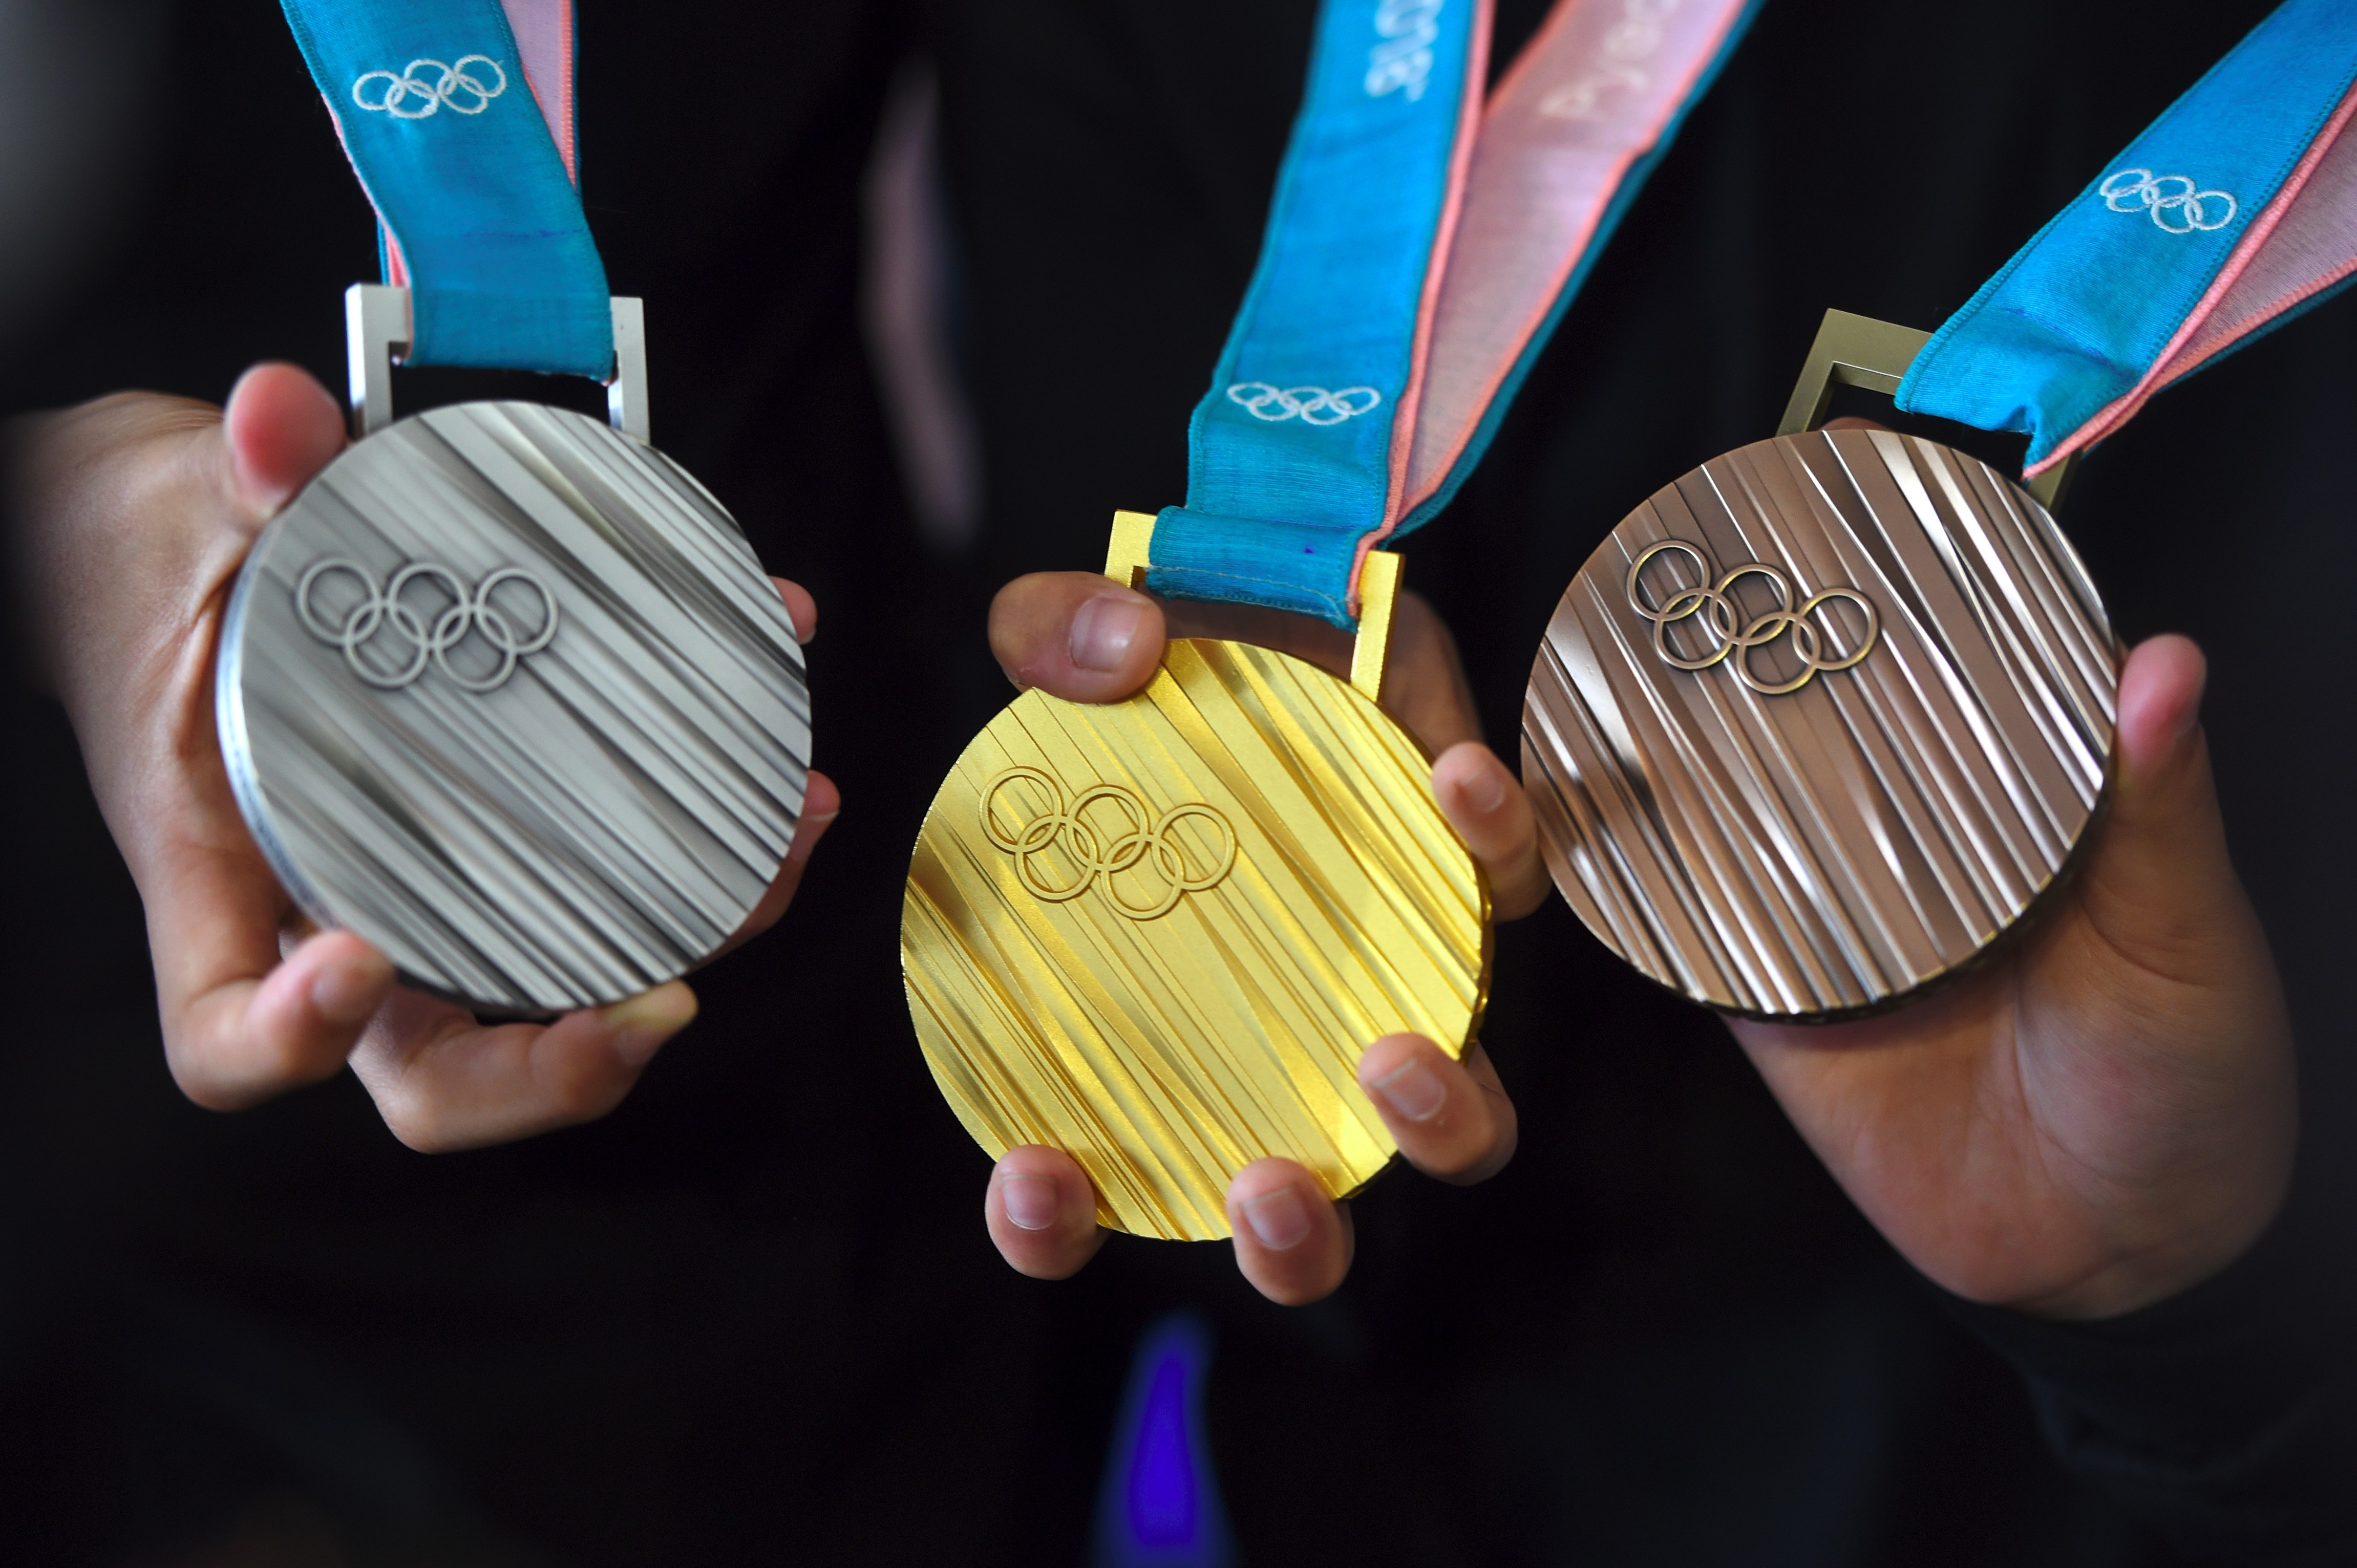 The PyeongChang 2018 Olympic medals in silver, gold and bronze.